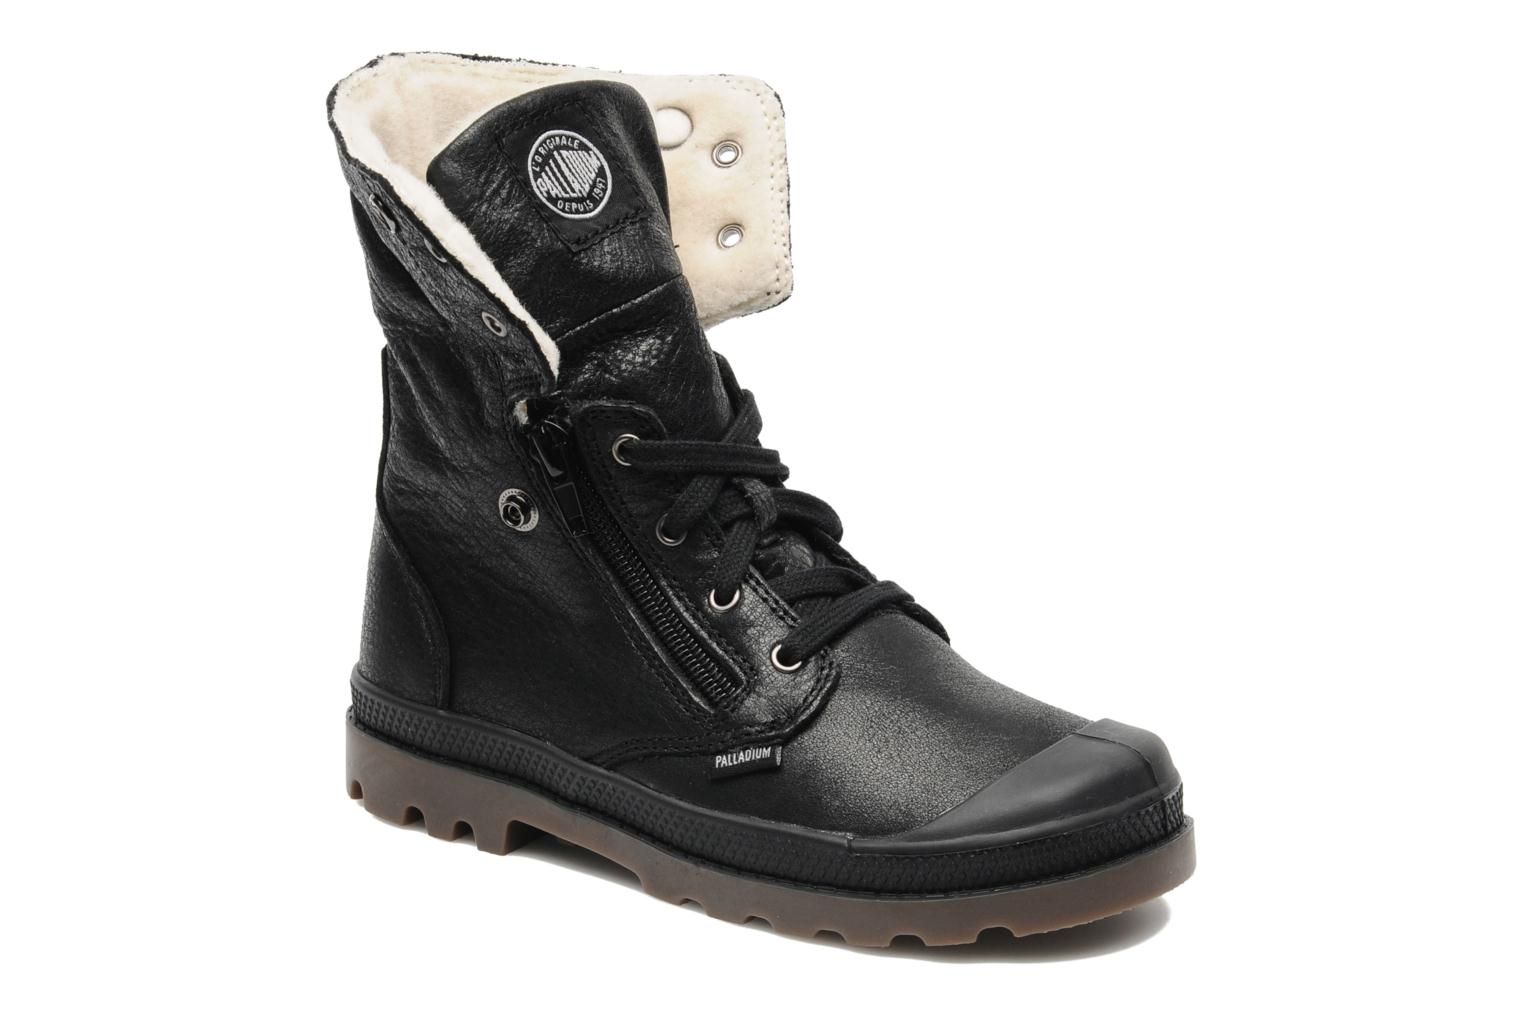 Bottines et boots Palladium Baggy Leather K Noir vue 3/4